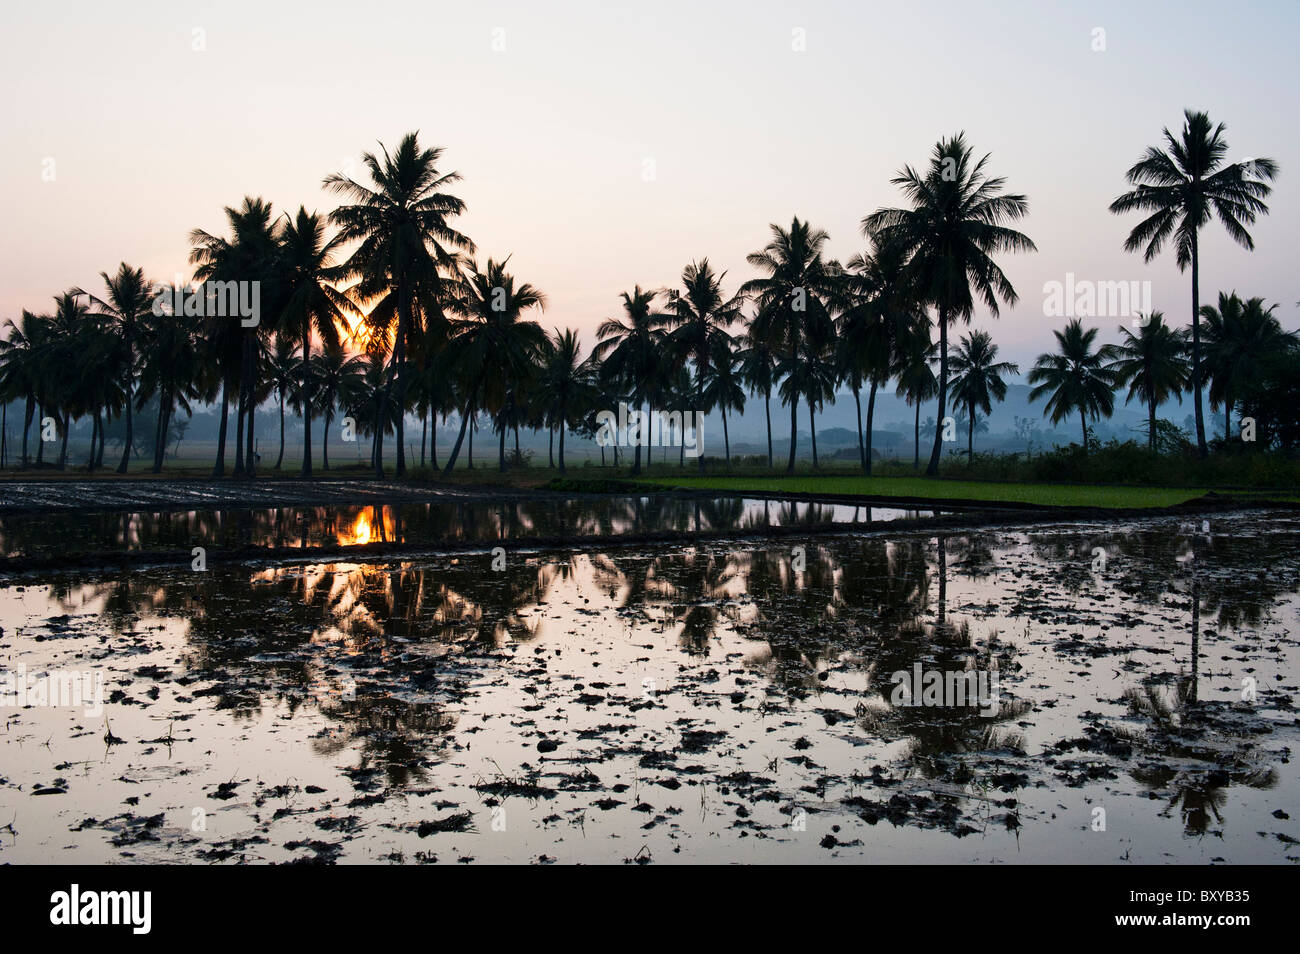 Prepared Indian rice paddy in front of palm trees at sunrise in the Indian countryside. Andhra Pradesh, India - Stock Image